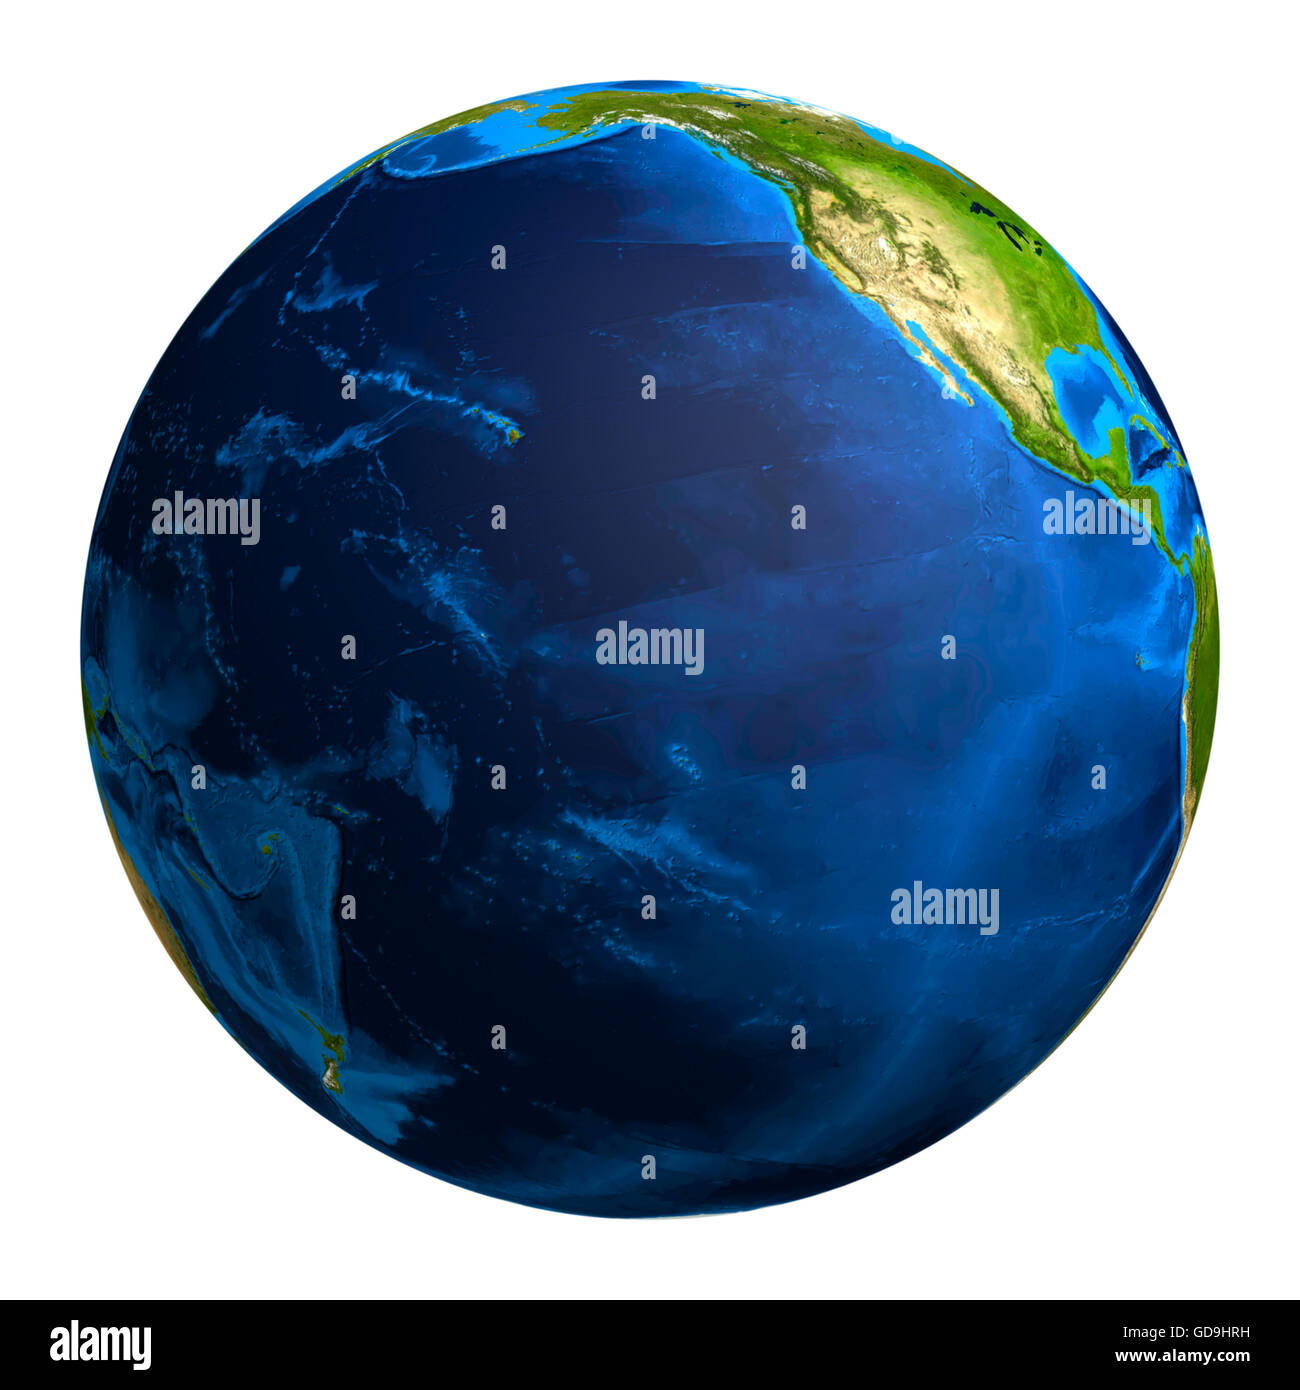 Earth globe showing the Pacific ocean and a part of the North American continent, 3D illustration - Stock Image